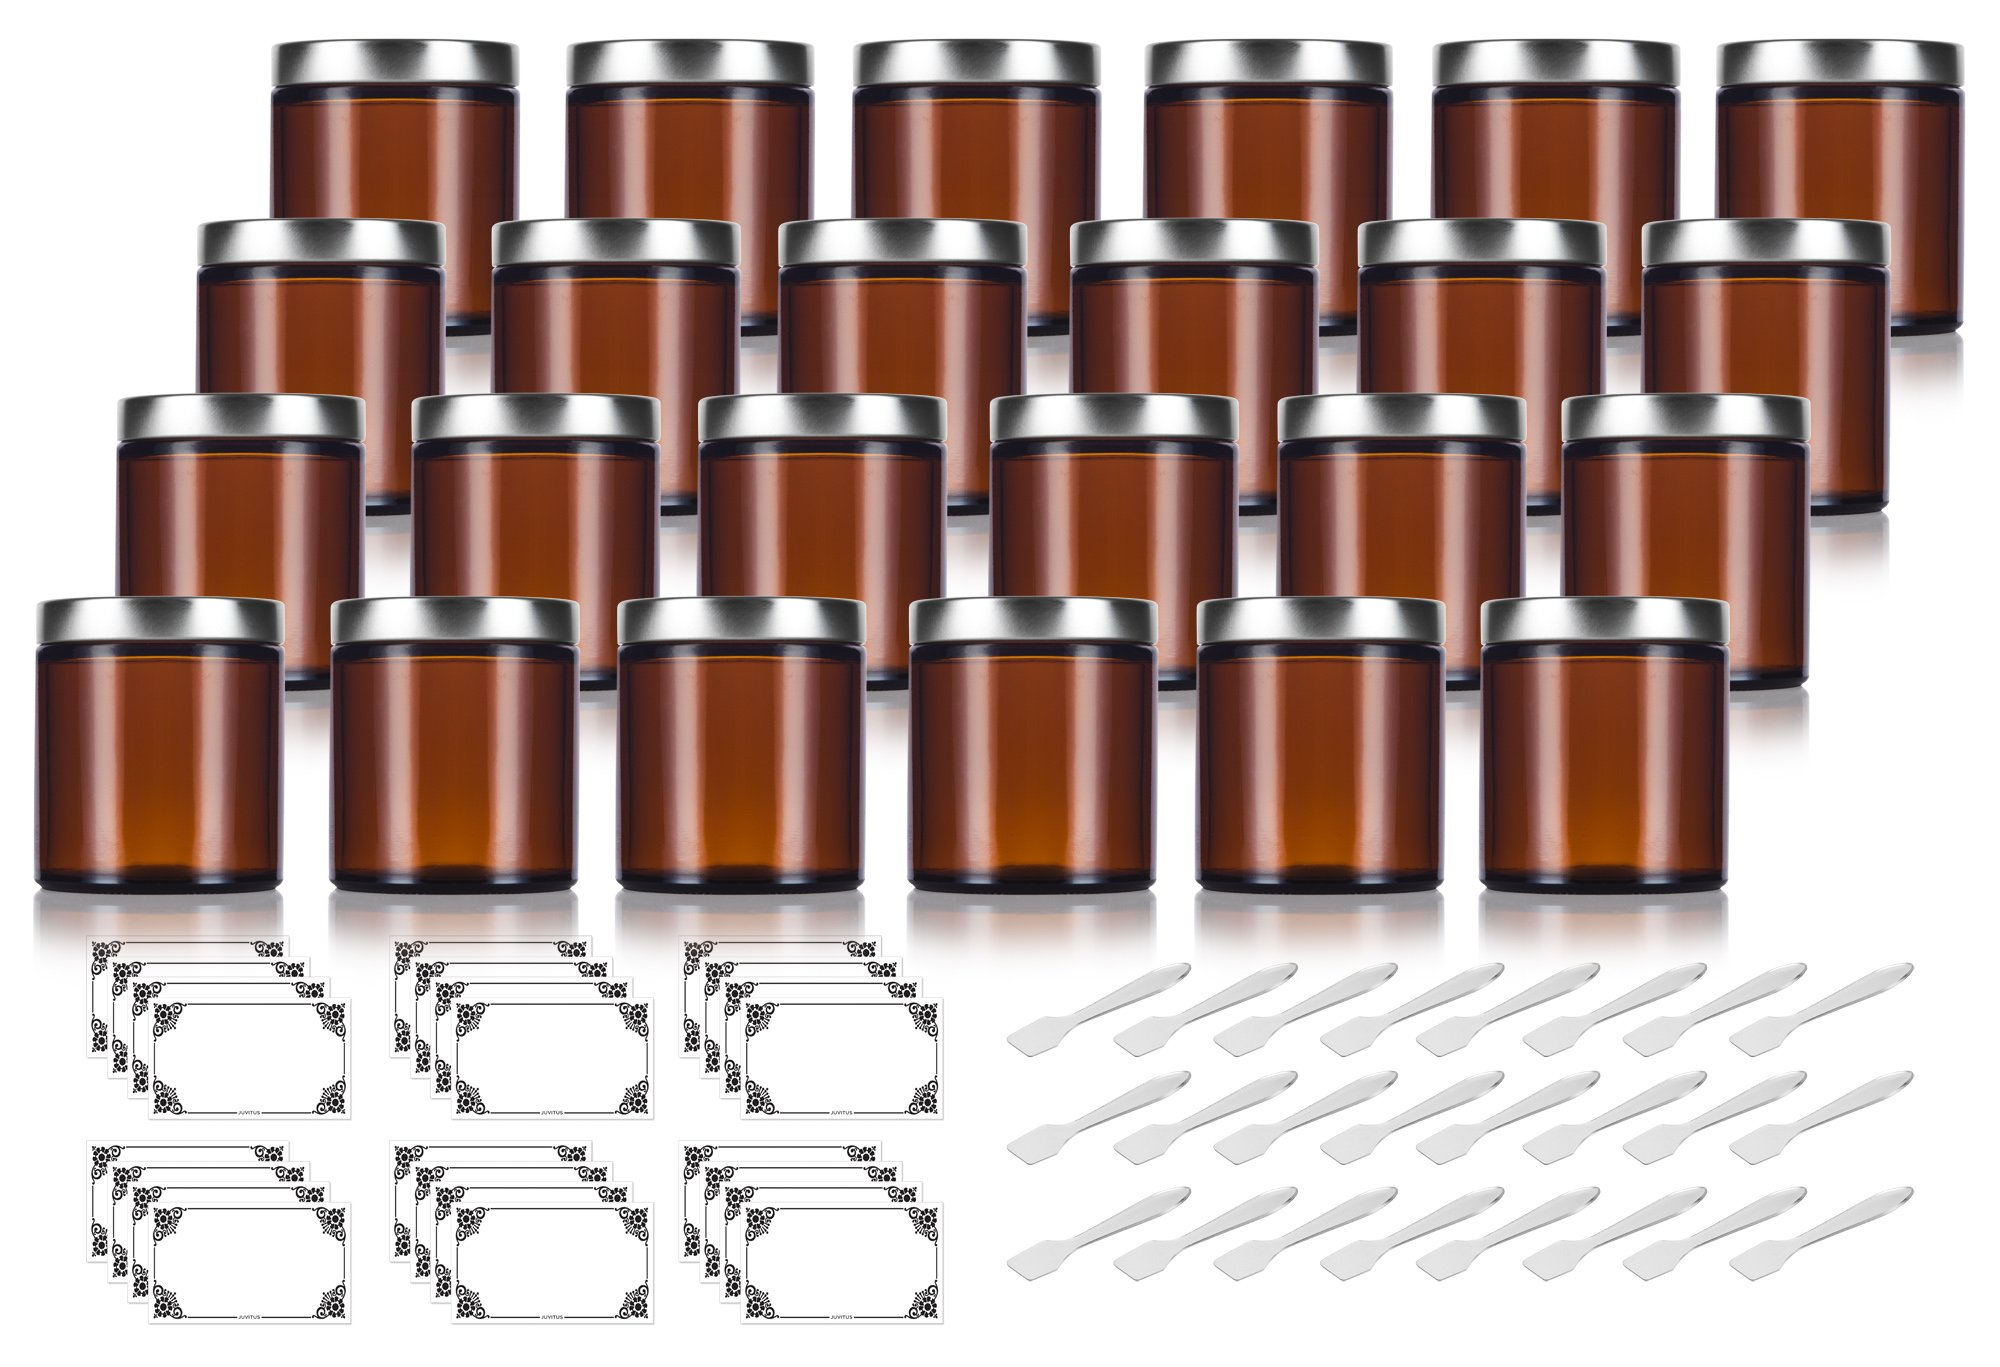 Amber Thick Glass Straight Sided Jar with Silver Metal Airtight Lid - 4 oz / 120 ml (24 pack) + Spatulas and Labels